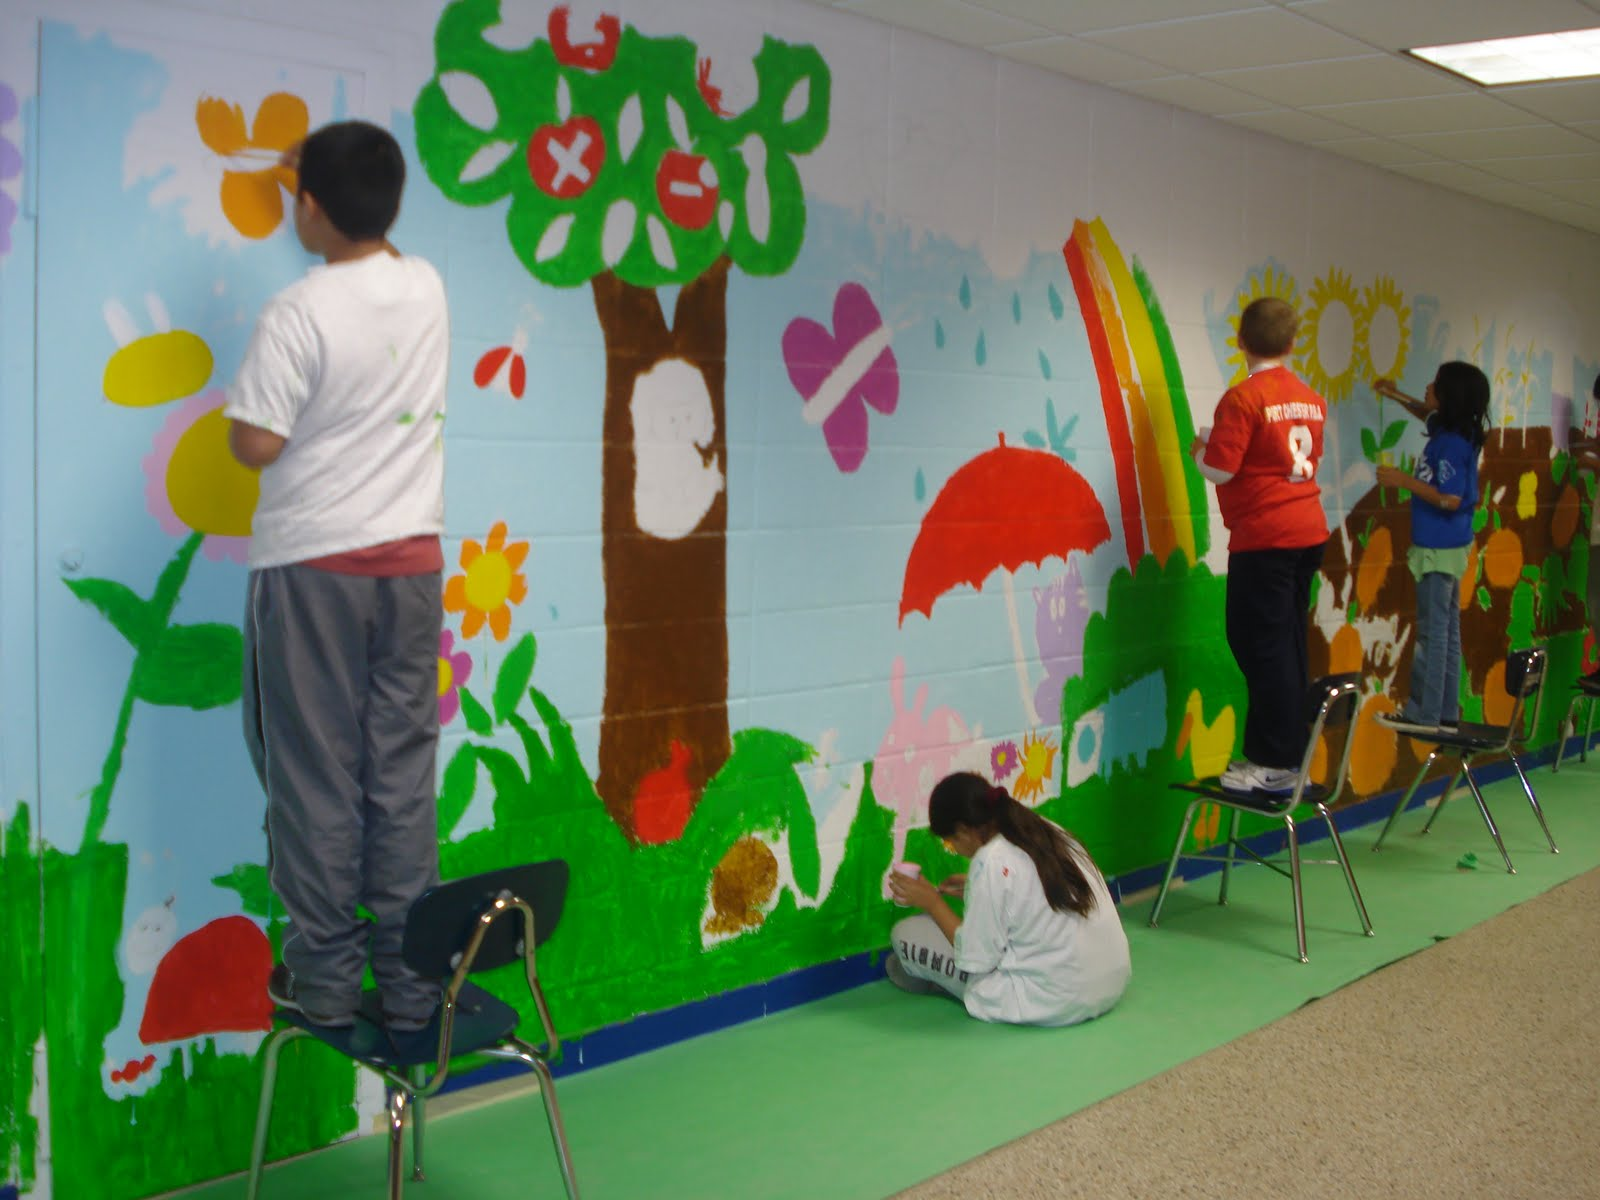 Terry taylor studio wall mural in progress for Classroom mural ideas